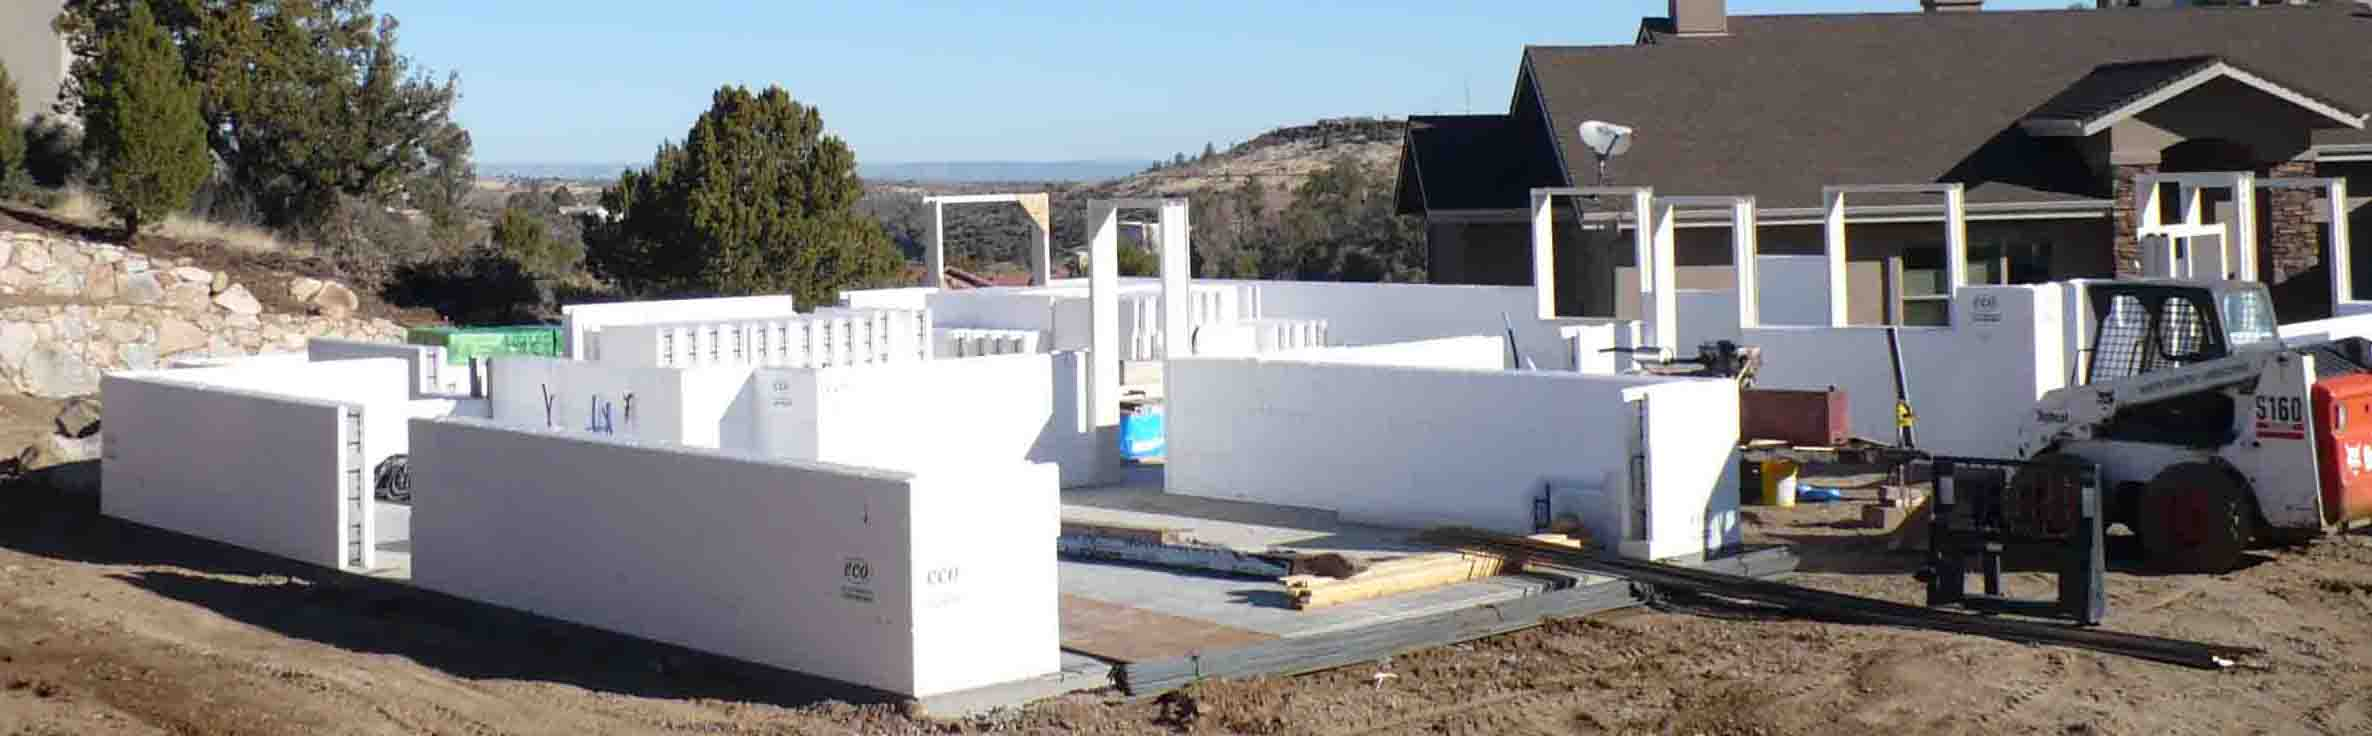 Ot icf concrete forms home construction for Icf home construction